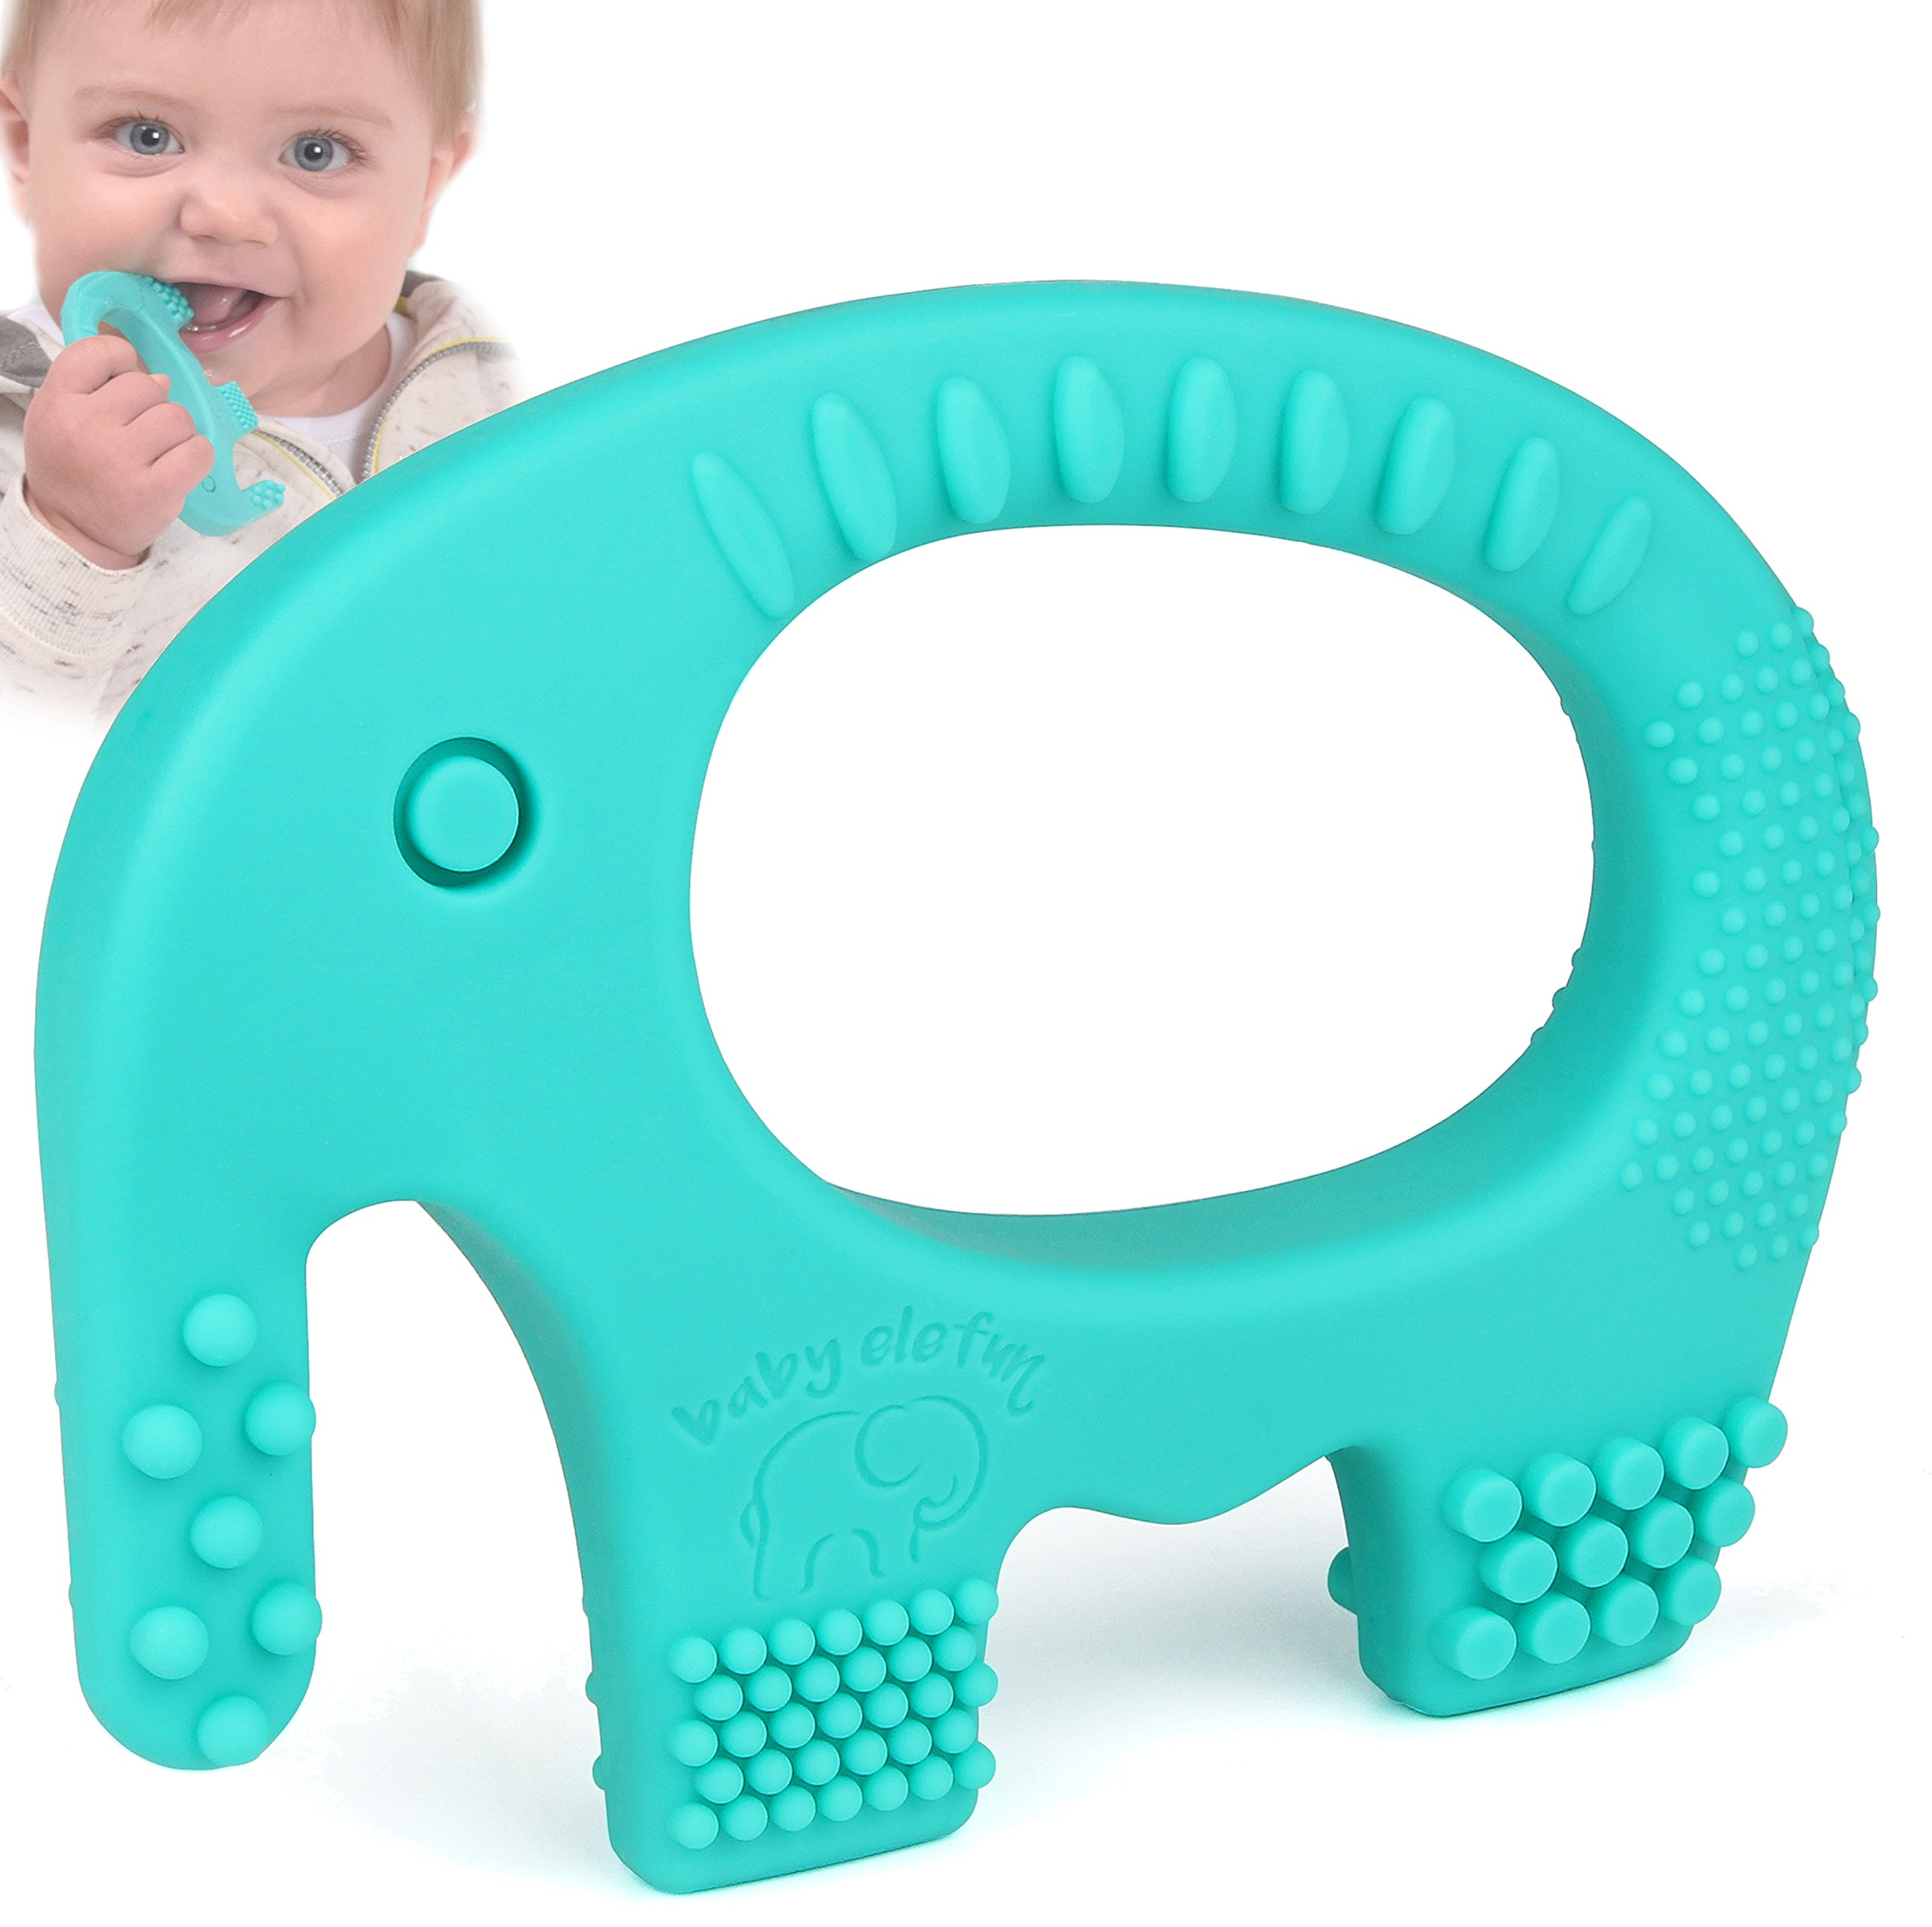 Amazon baby teething toys adorable blue silicone elephant baby teething toys adorable turquoise silicone elephant teether bpa free best for girl or negle Image collections